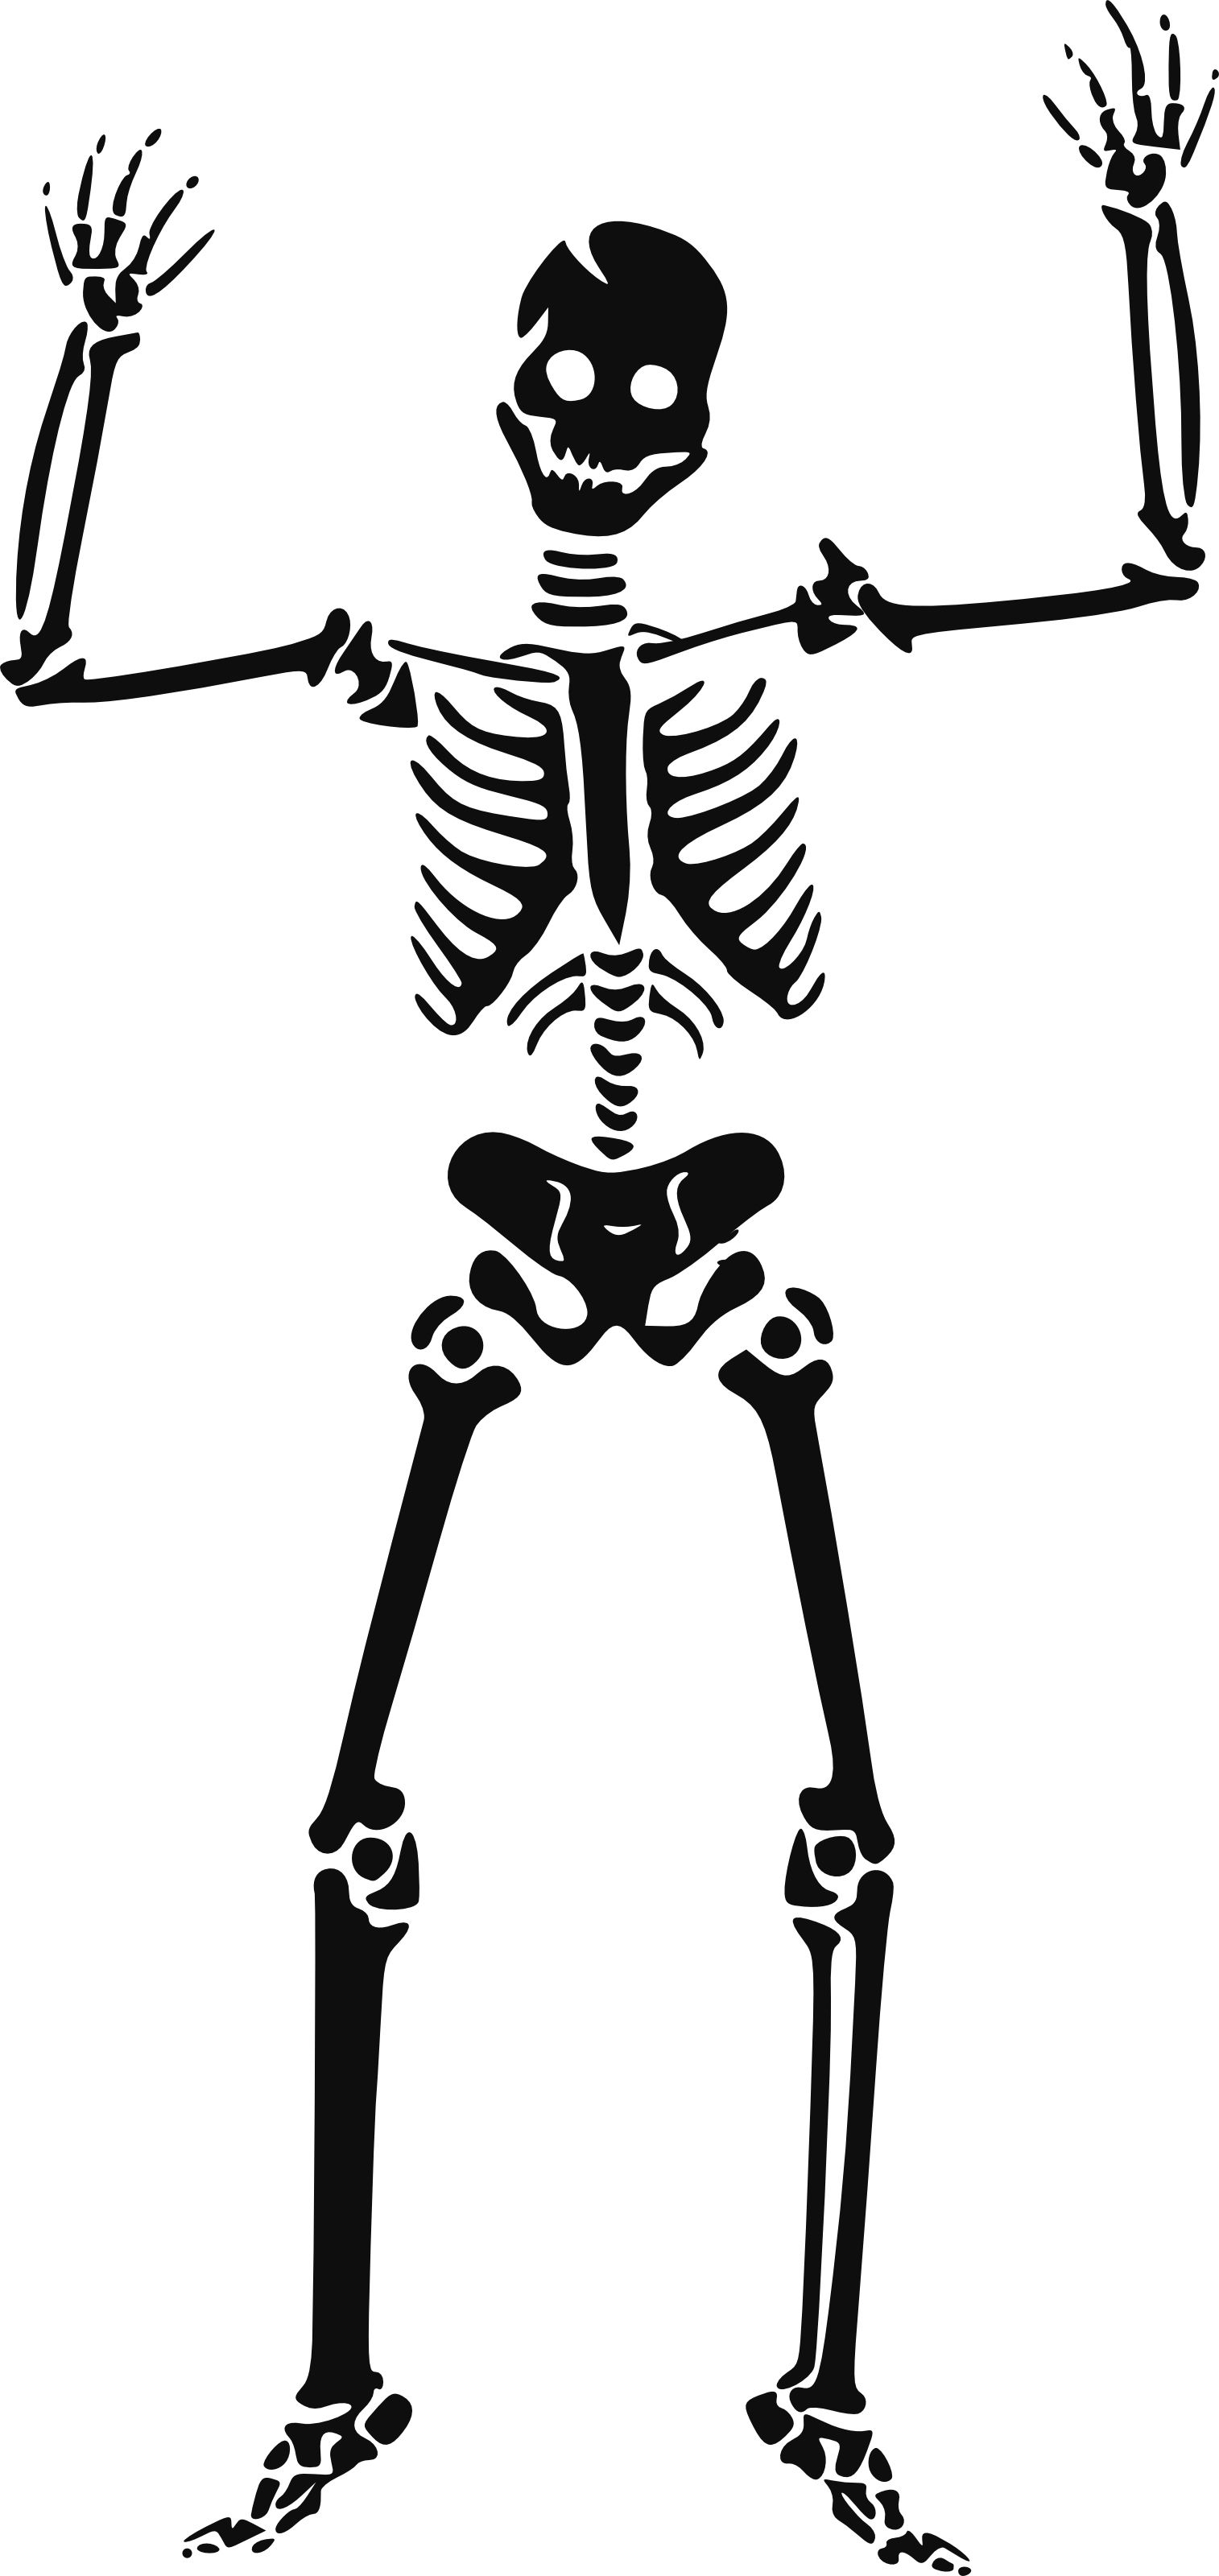 Bones clipart simple, Bones simple Transparent FREE for.